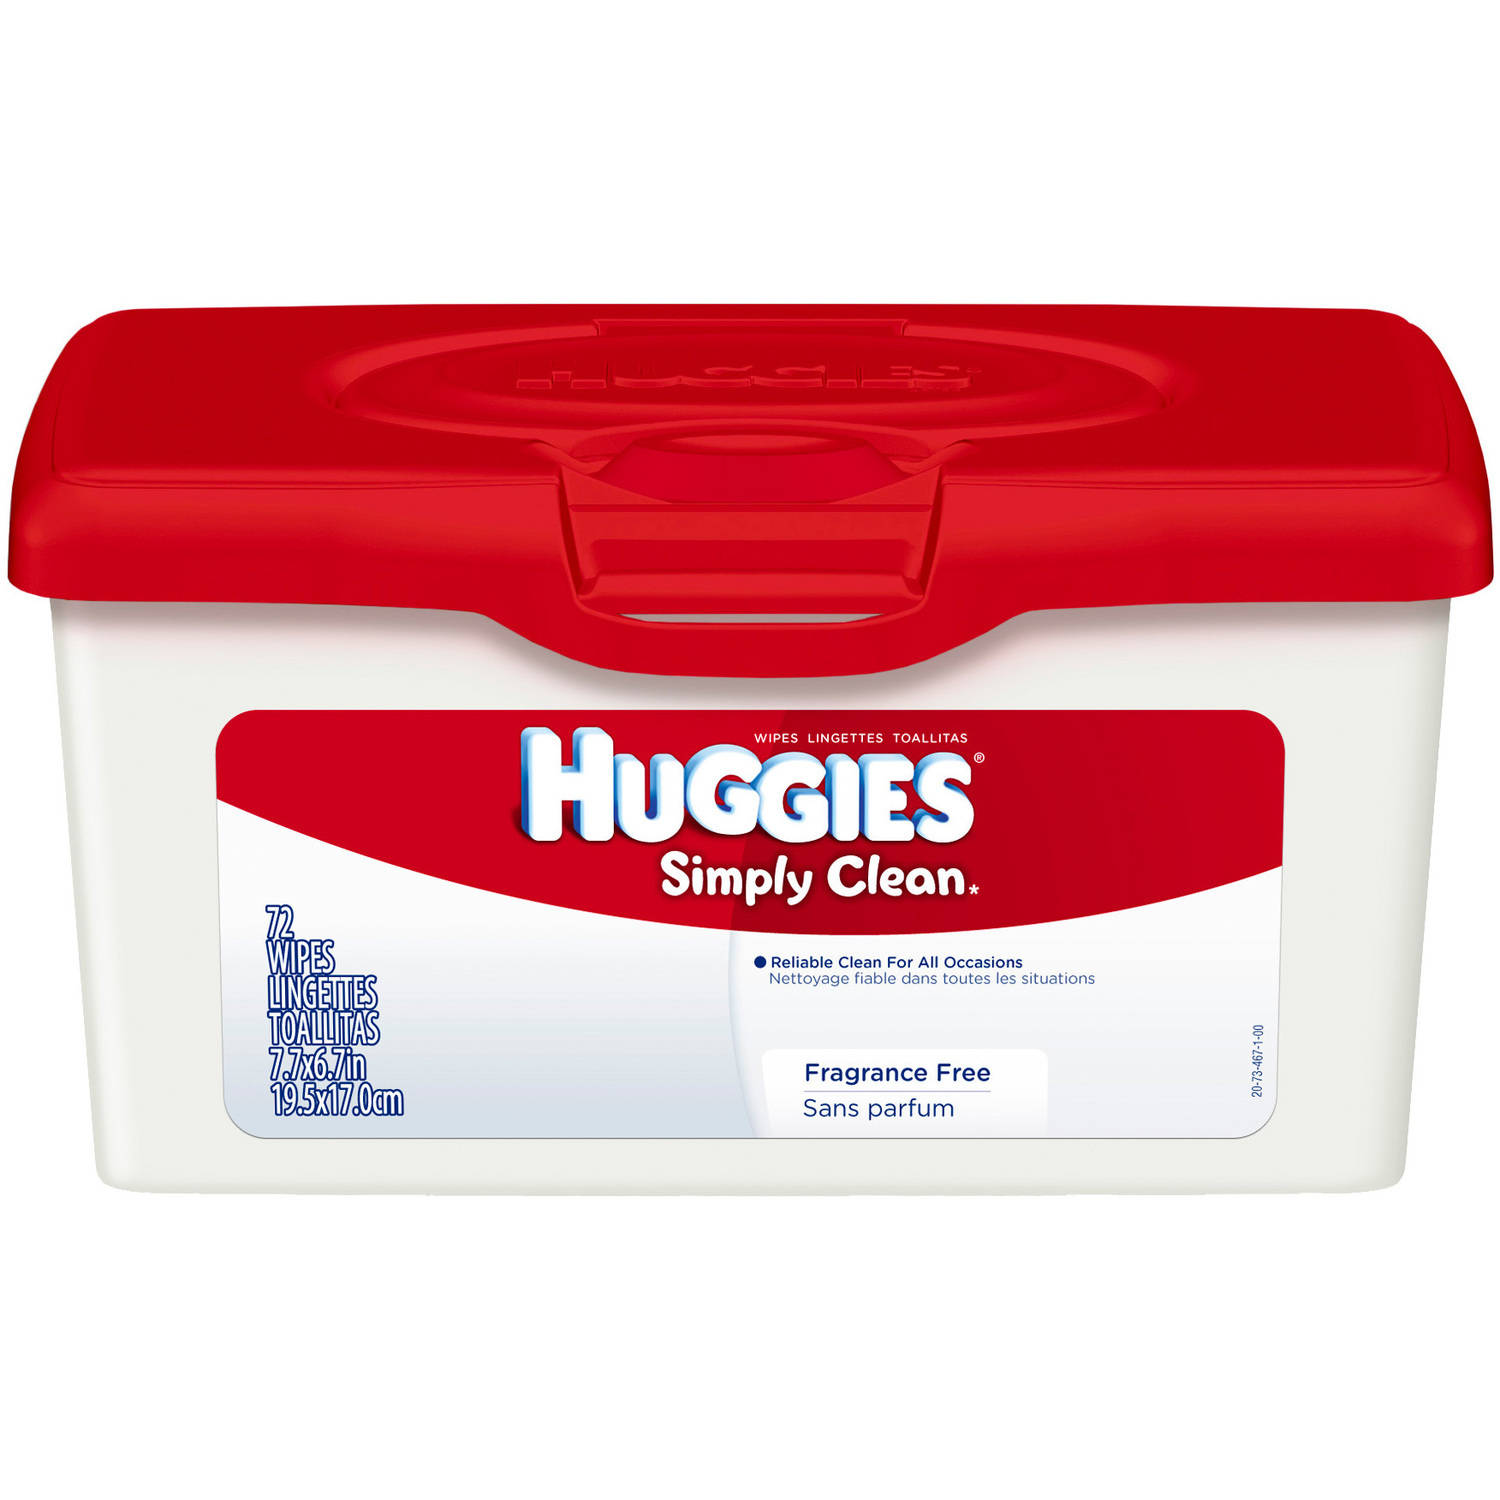 HUGGIES - Simply Clean Refreshing Baby Wipes, 72 Sheets